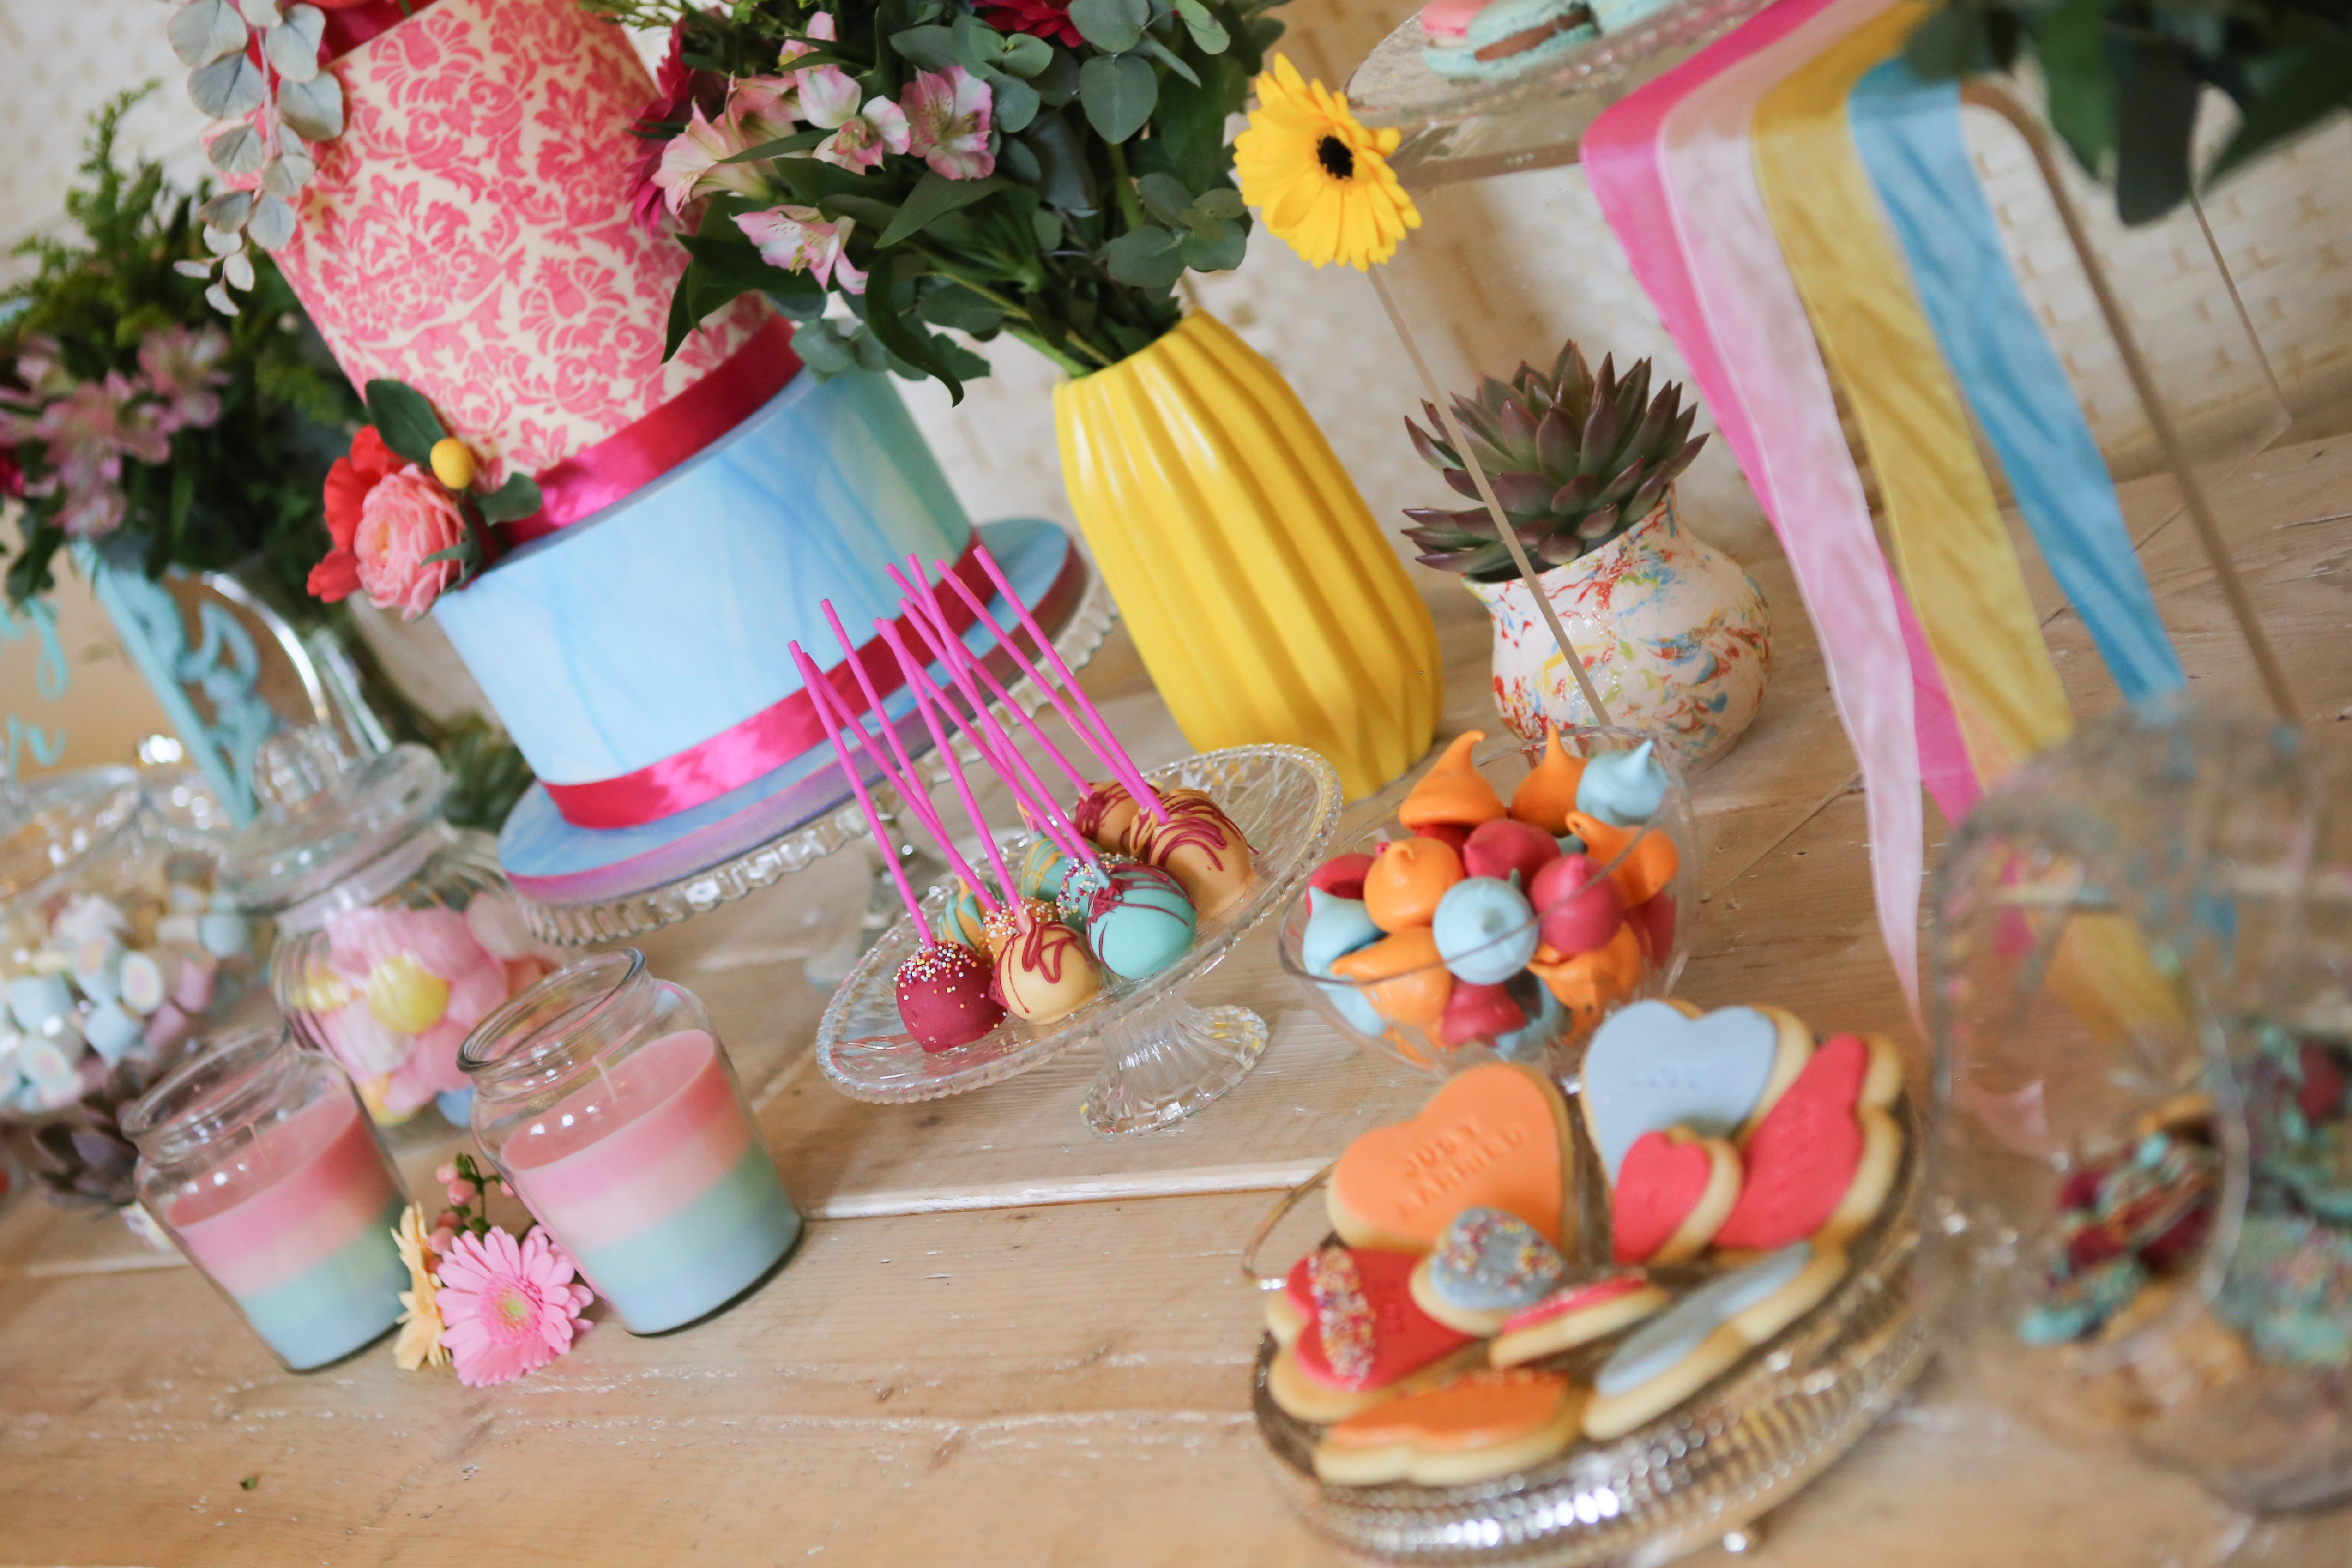 colour wedding cake, cake pops & biscuits